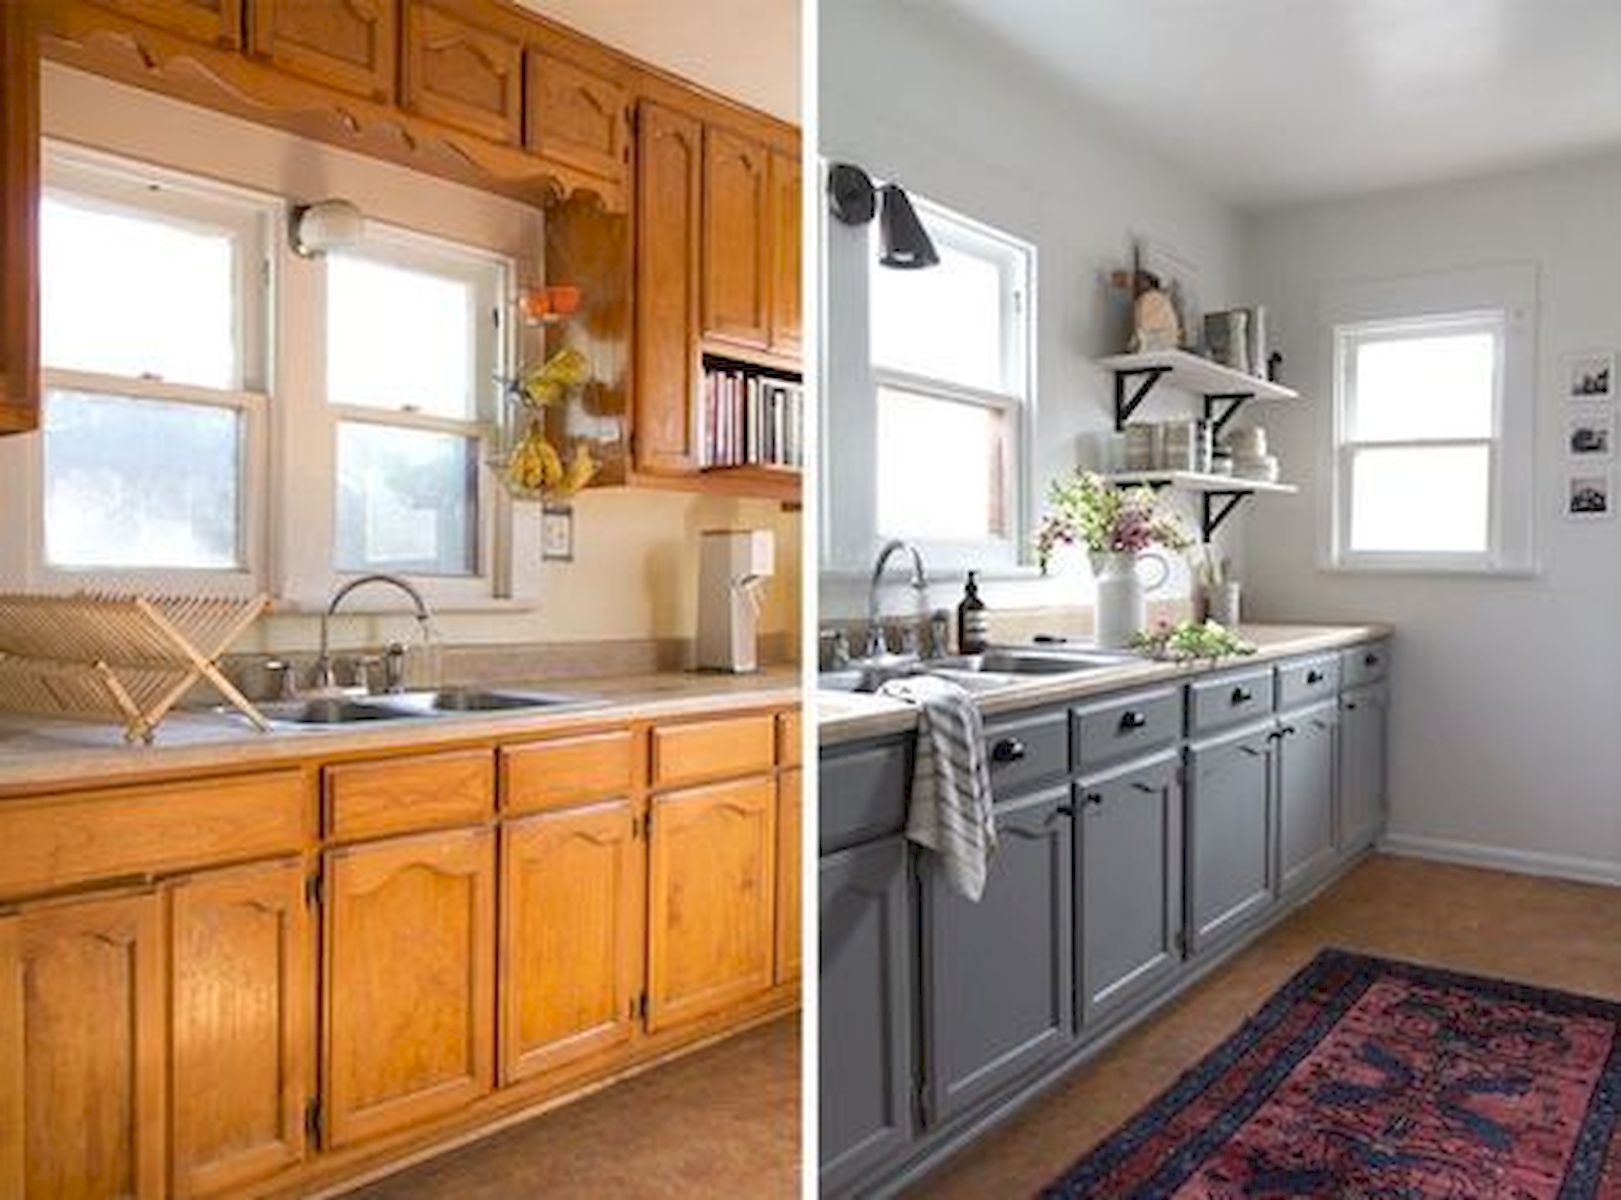 Before After Painted Kitchen Cabinet Idea Home Design Kitchen Diy Makeover Upcycle Kitchen Kitchen Renovation